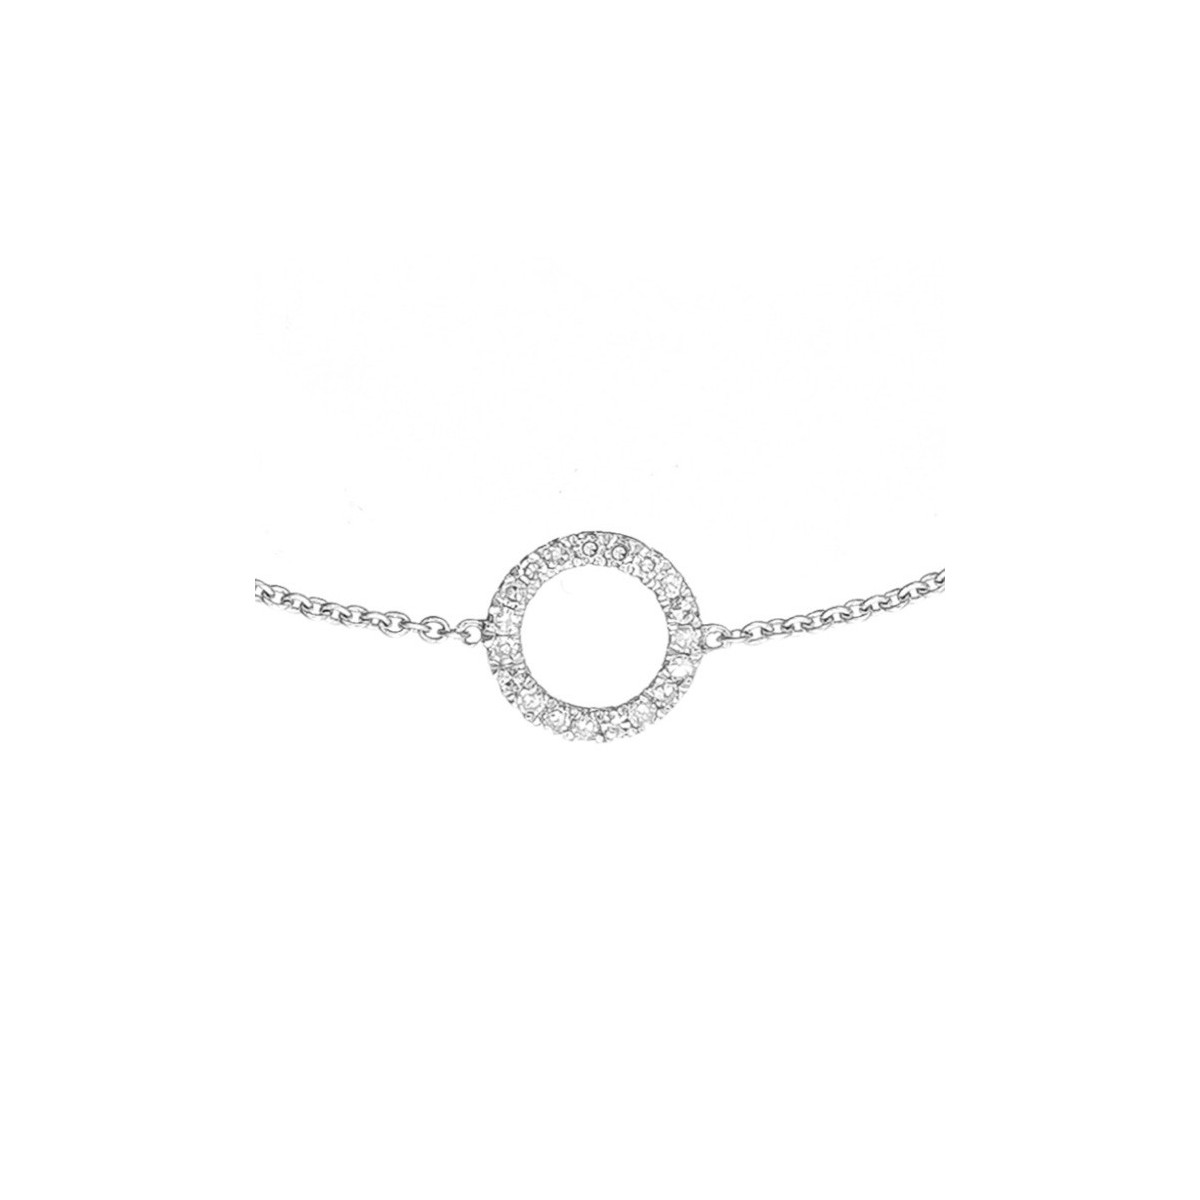 "Bracelet chaine Or Blanc et Diamants 0,06 carat ""BULLE DE DIAMANTS"""